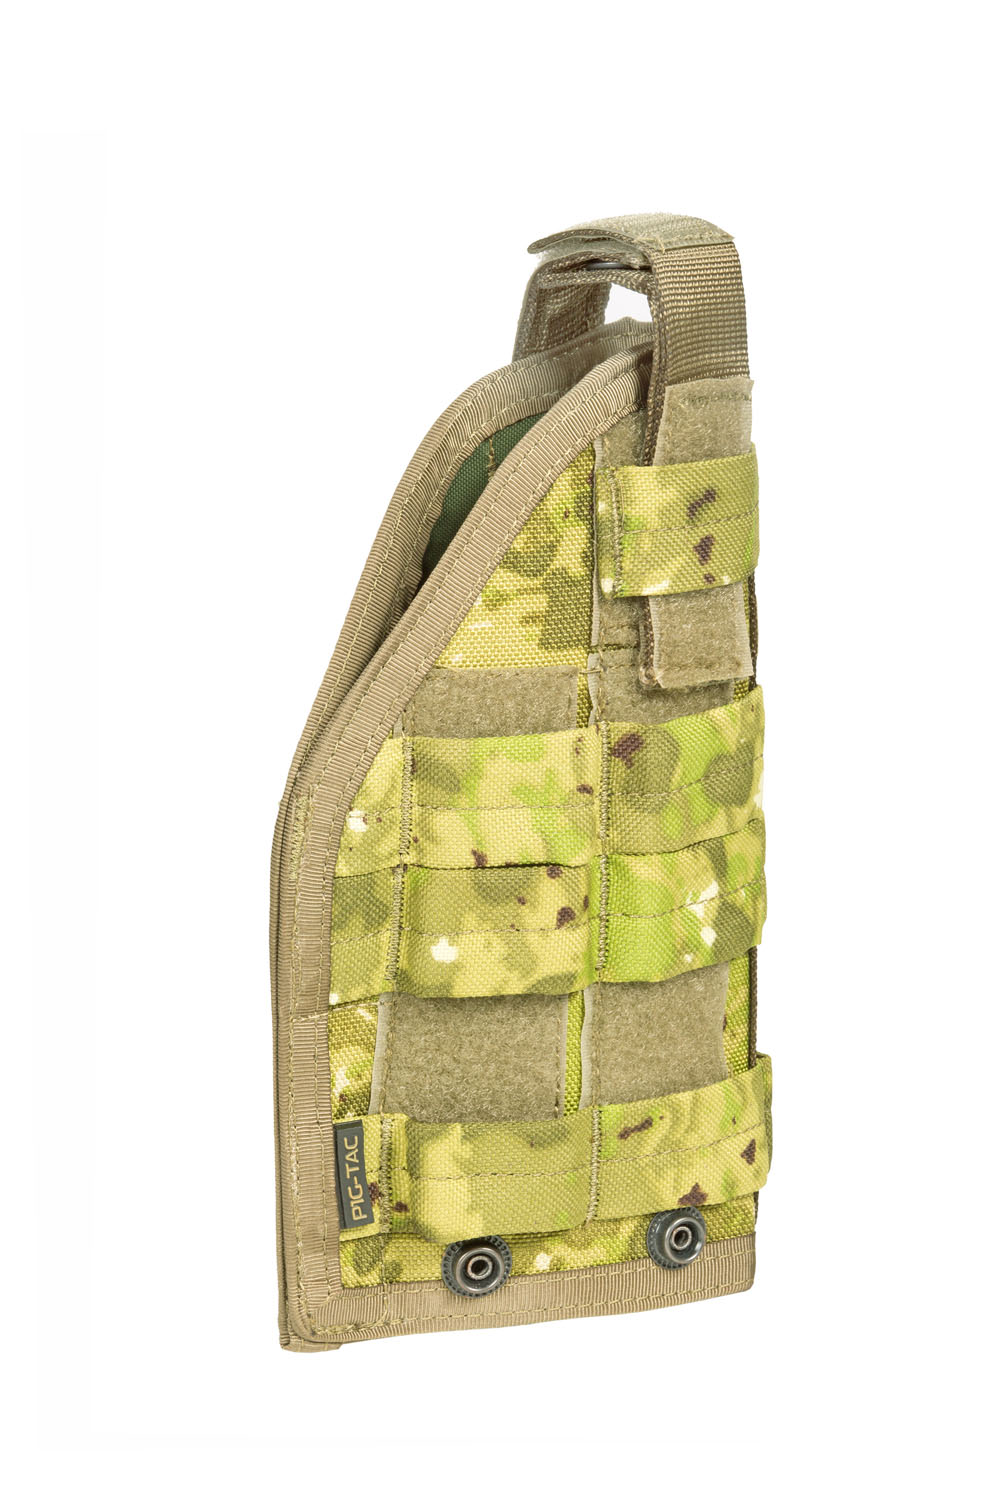 Universal Tactical MOLLE holster